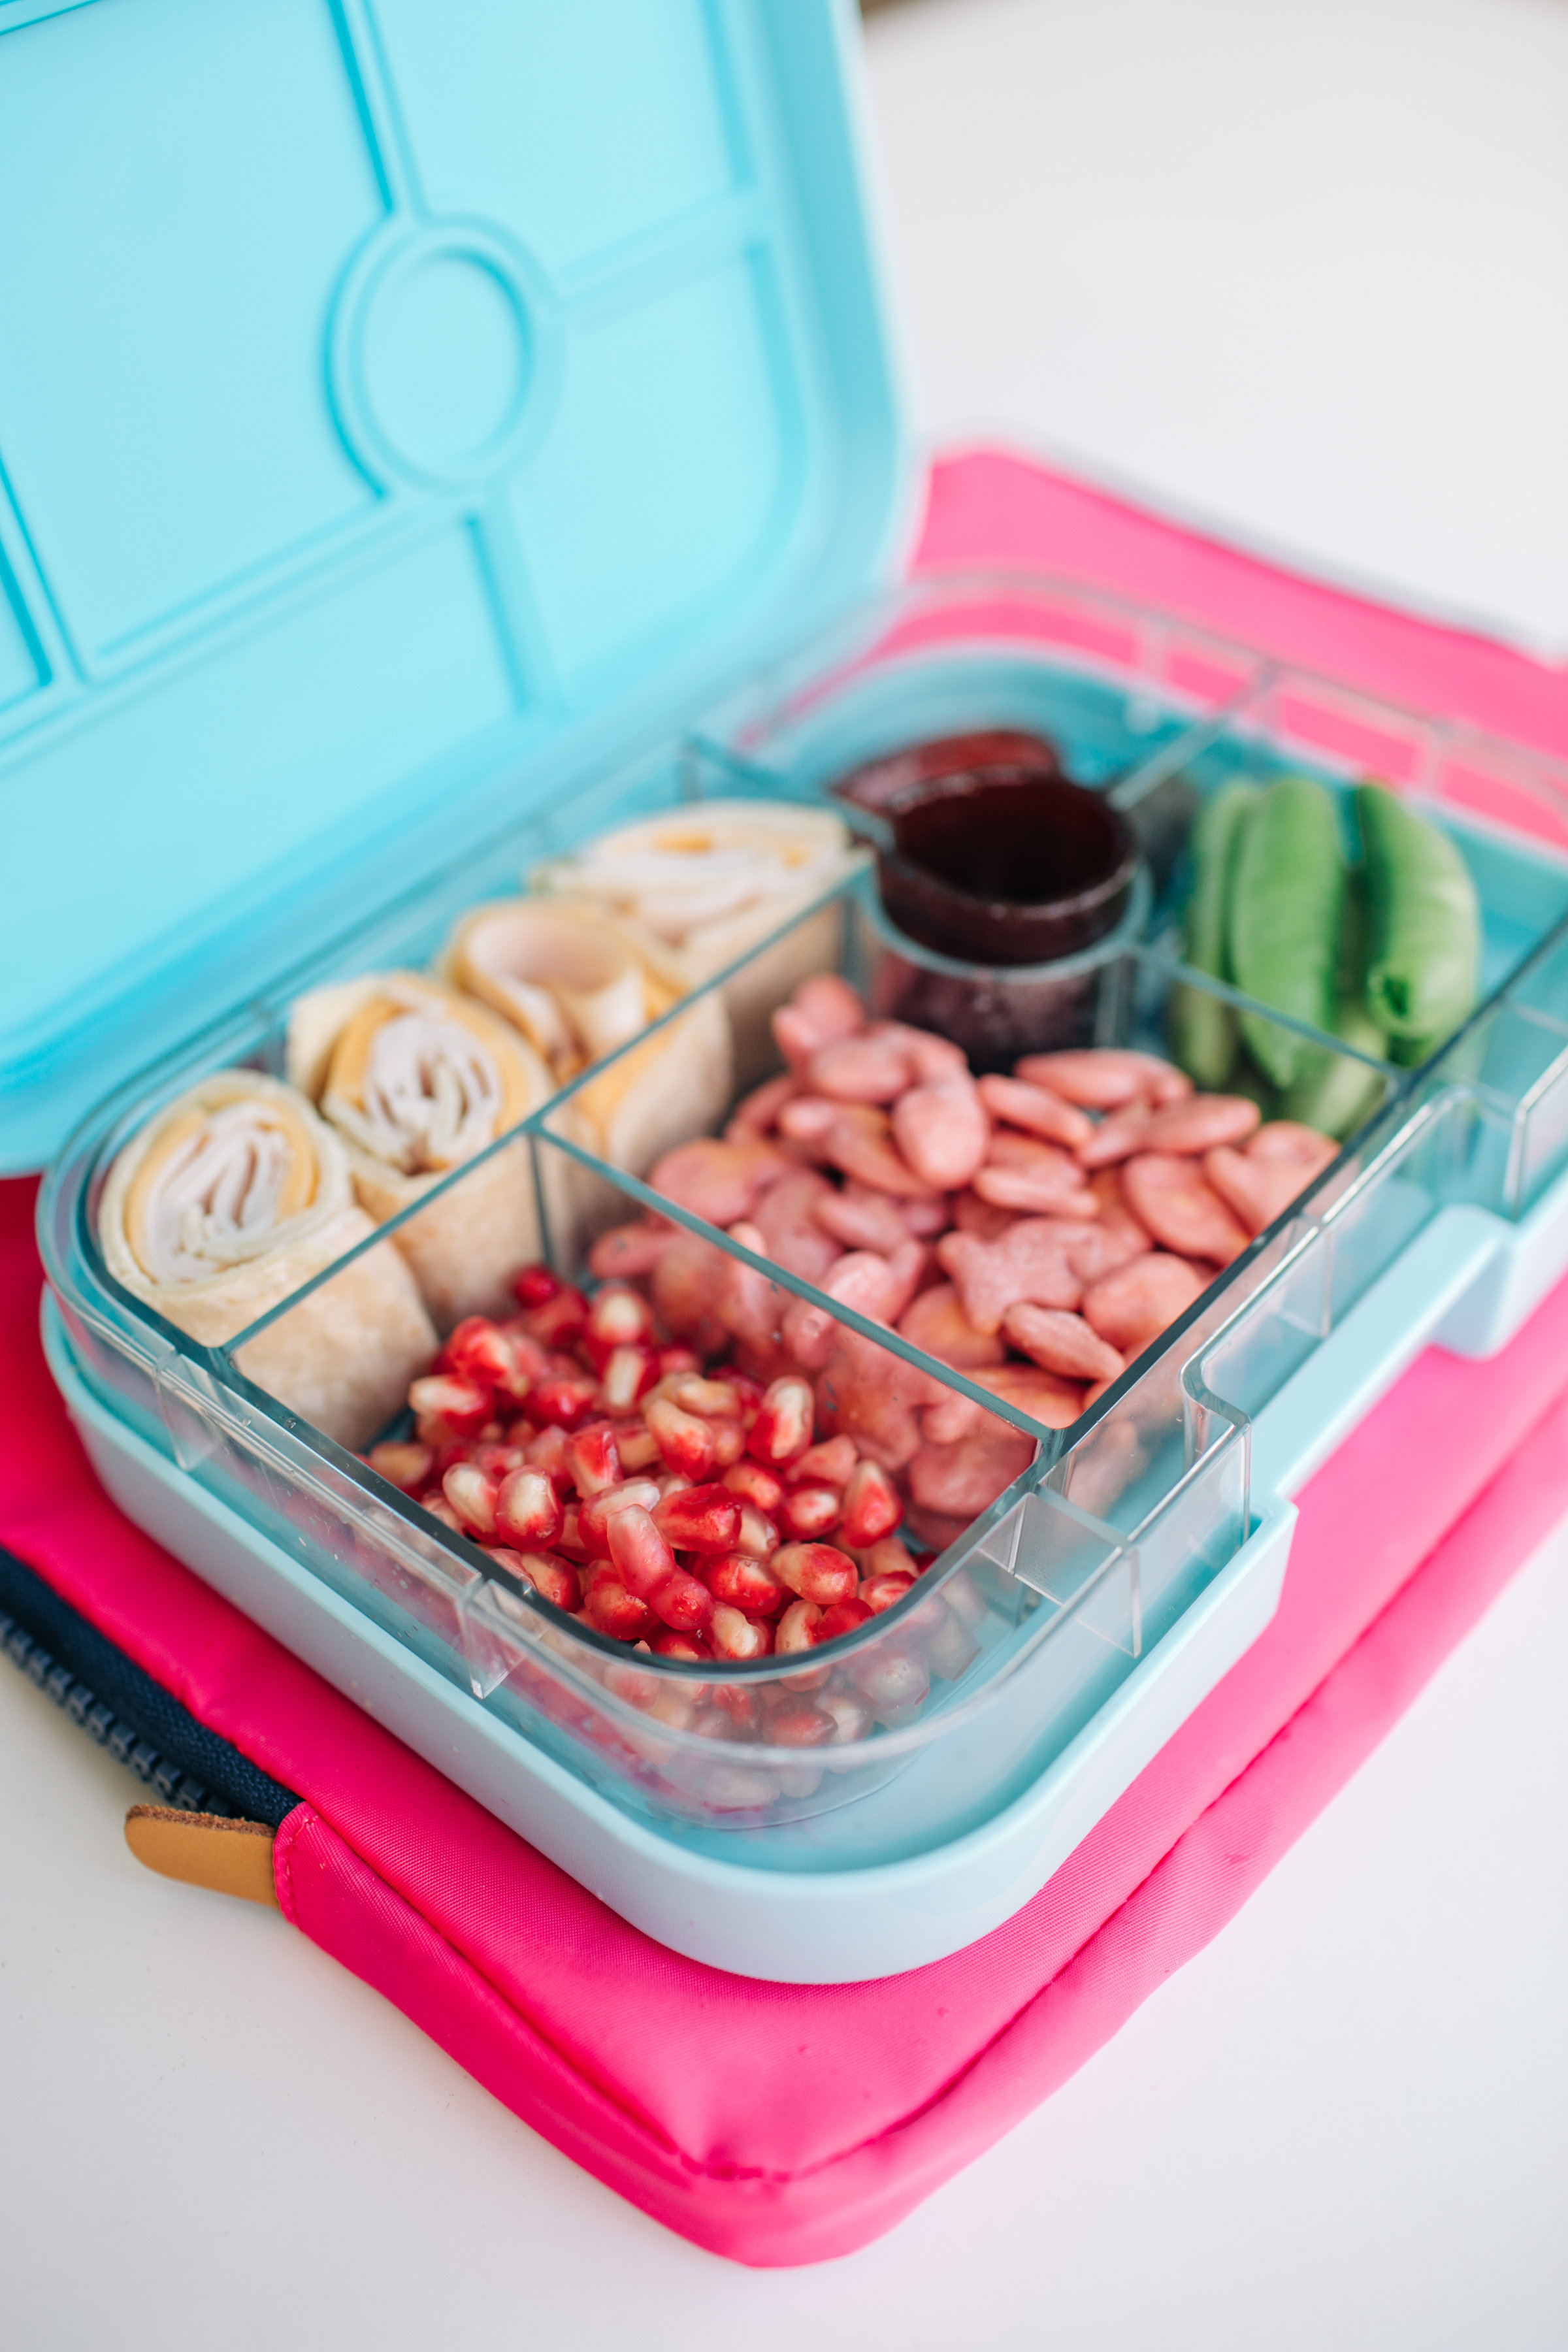 Turkey and Cheddar Tortilla Roll, Sugar Snap Peas, Fruit Leather, Goldfish Crackers, Pomegranate Seeds and two pitted Dates! This Yumbox here is the  Original  size.